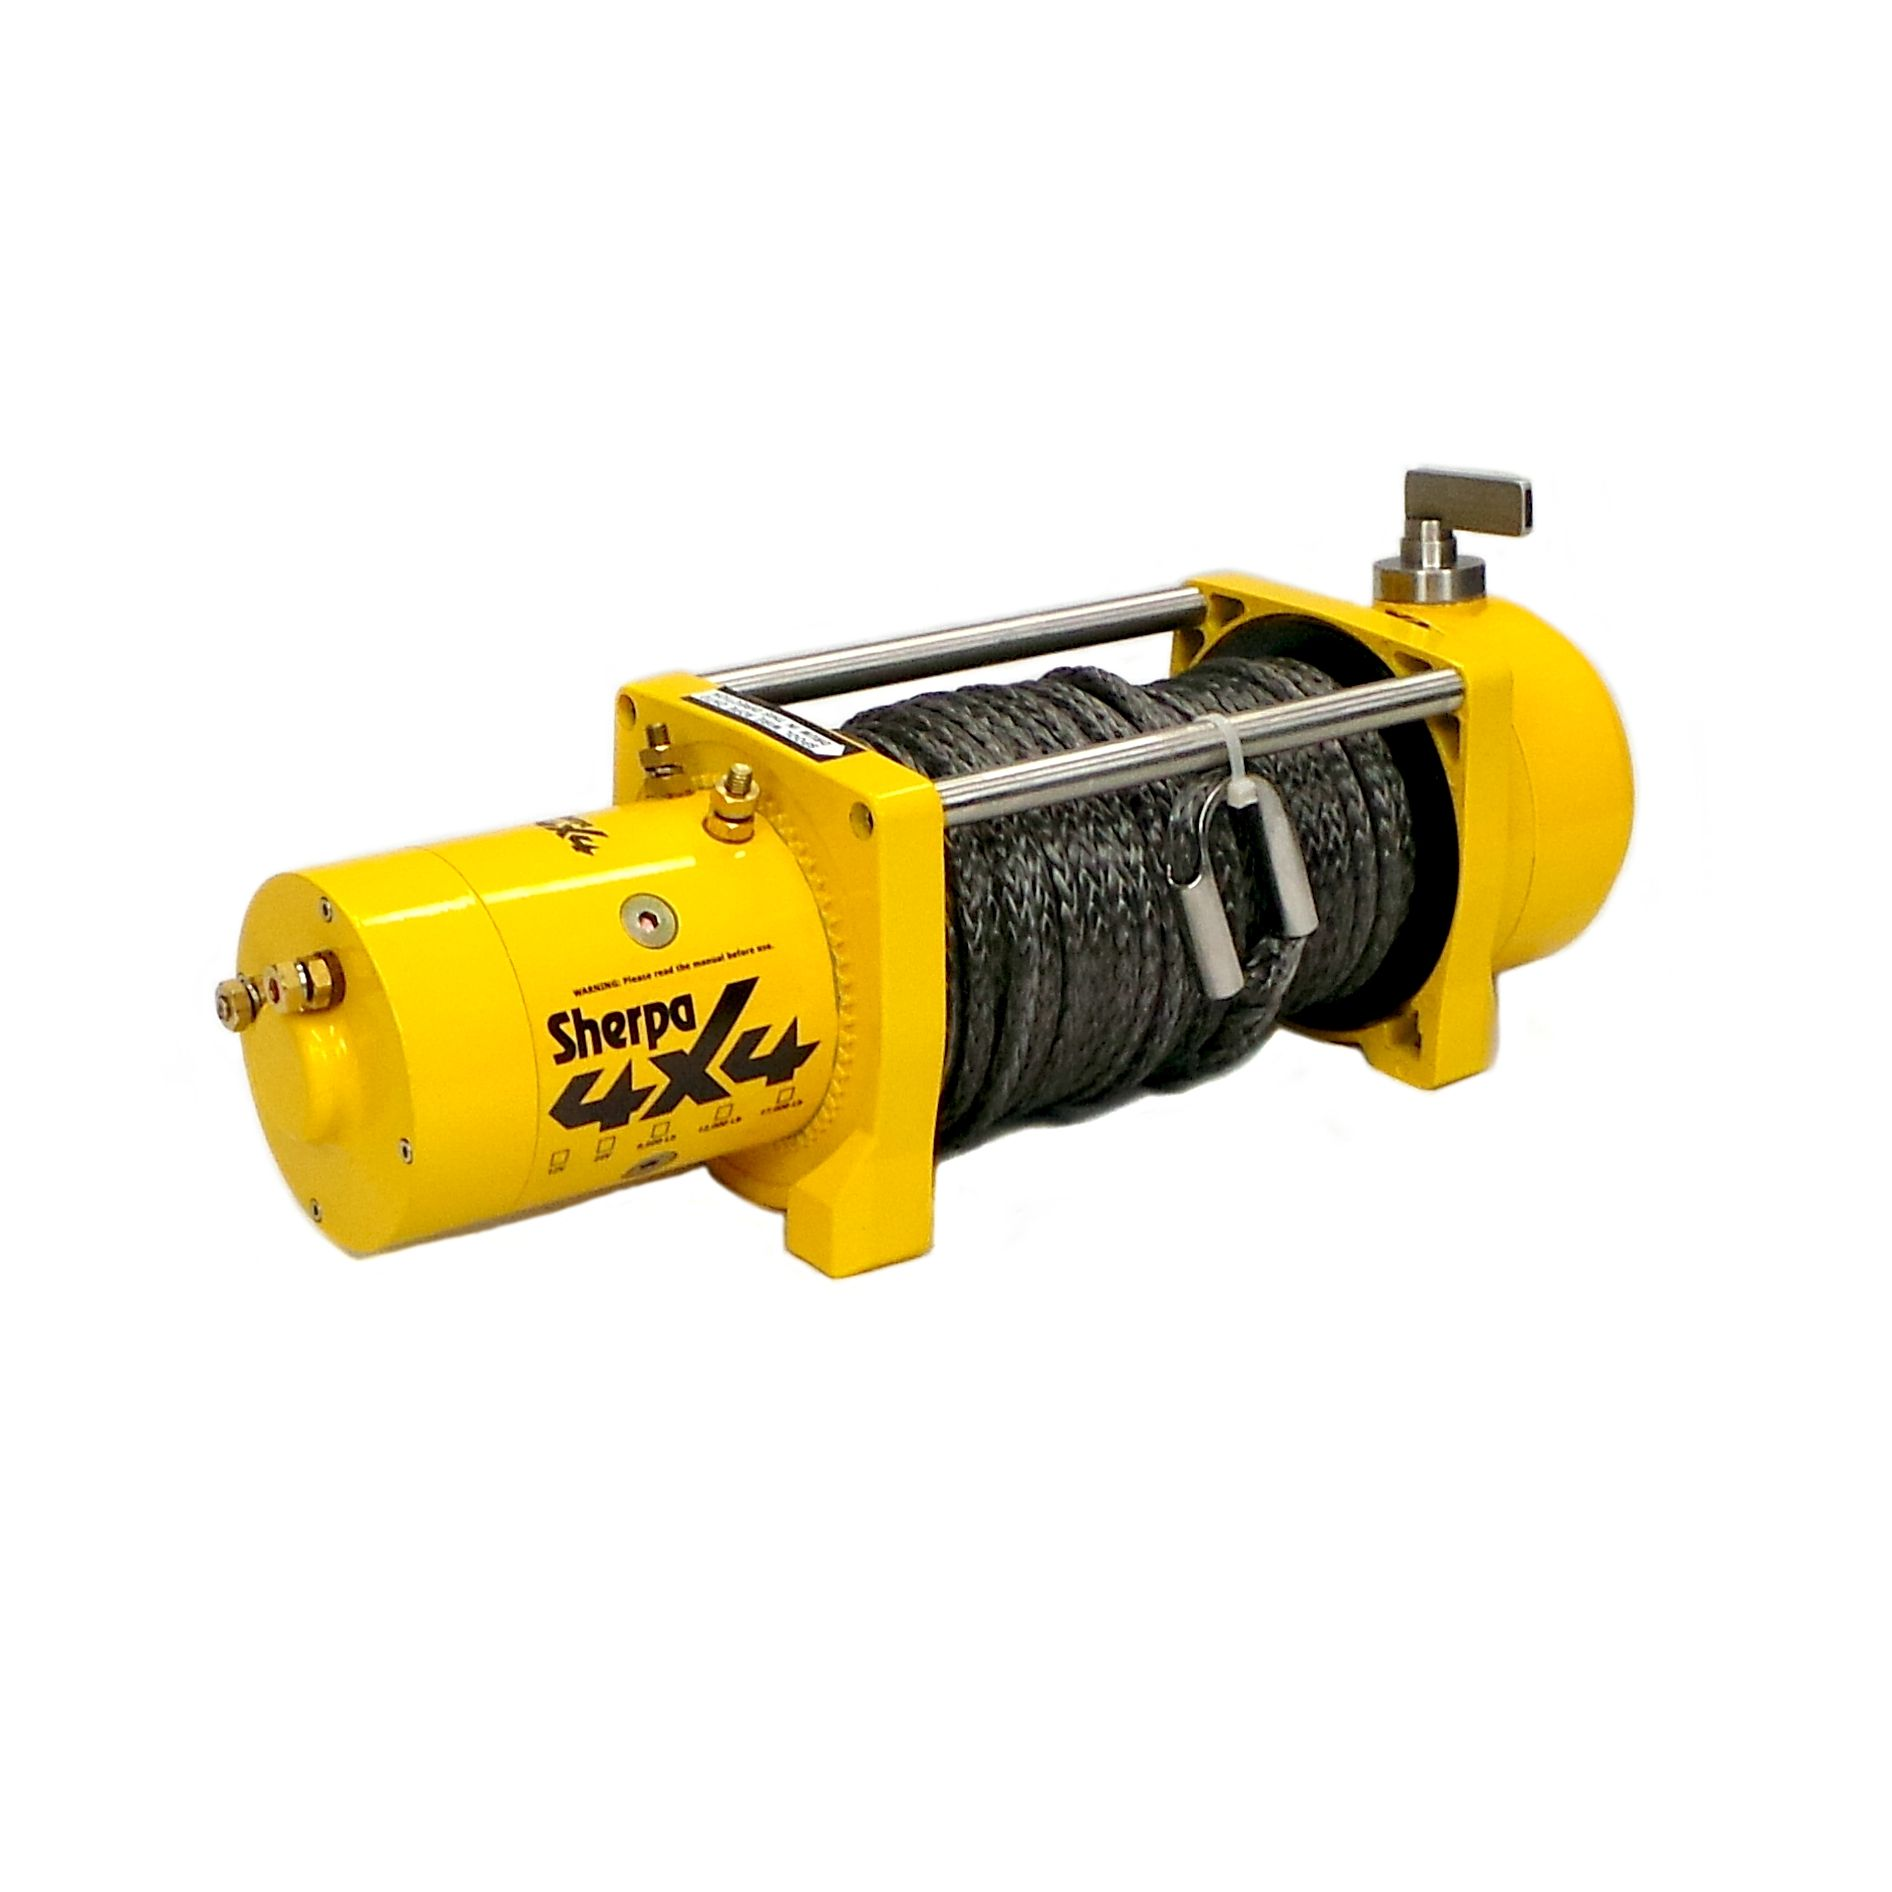 Sherpa 4x4 9500Lb Synthetic Rope Winch. 4wd 4x4 offroad